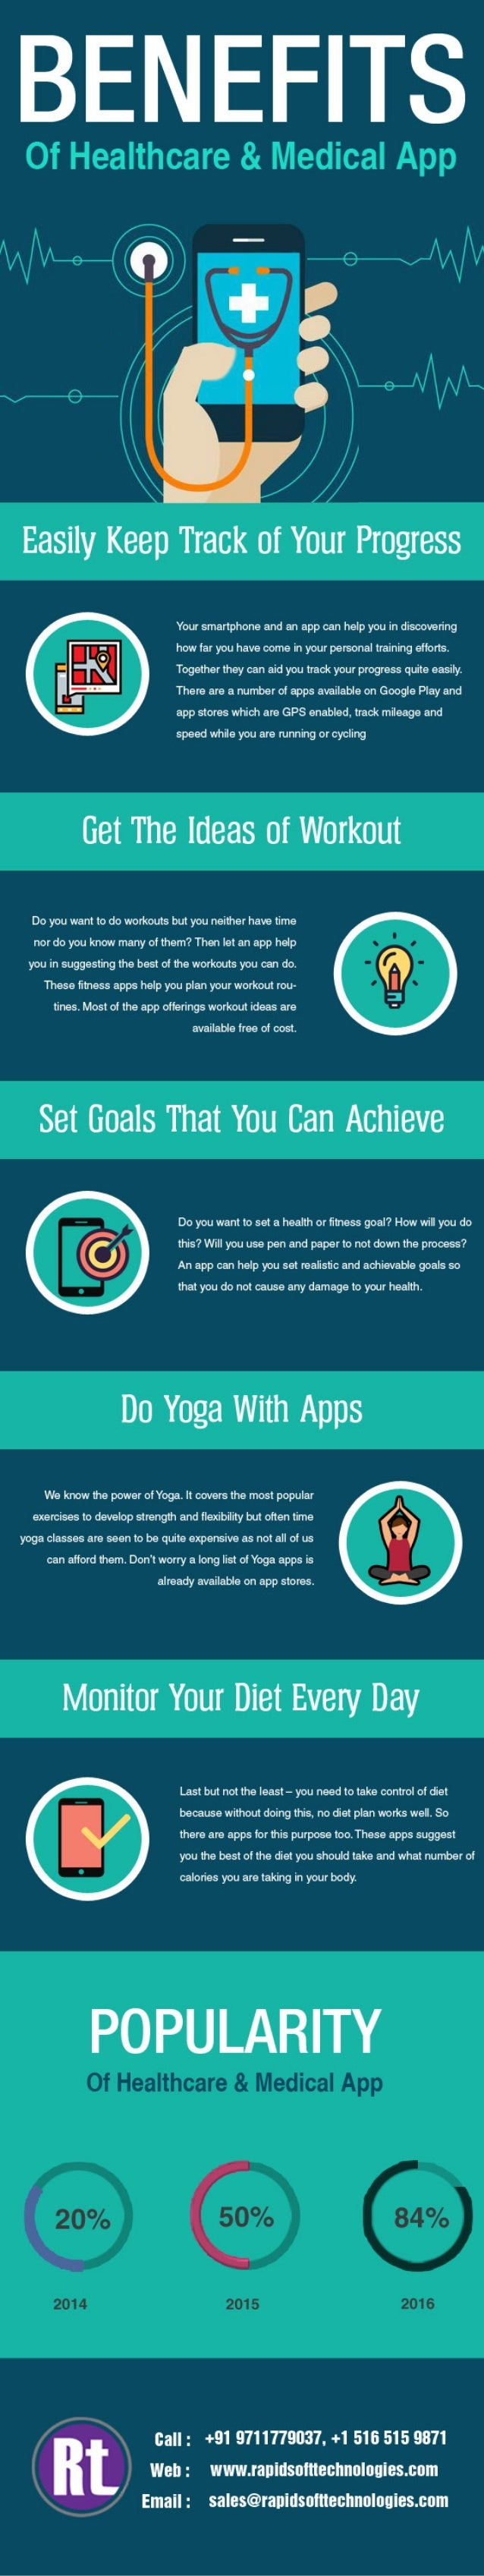 Do You Know the Benefits of Using Healthcare And Fitness Apps